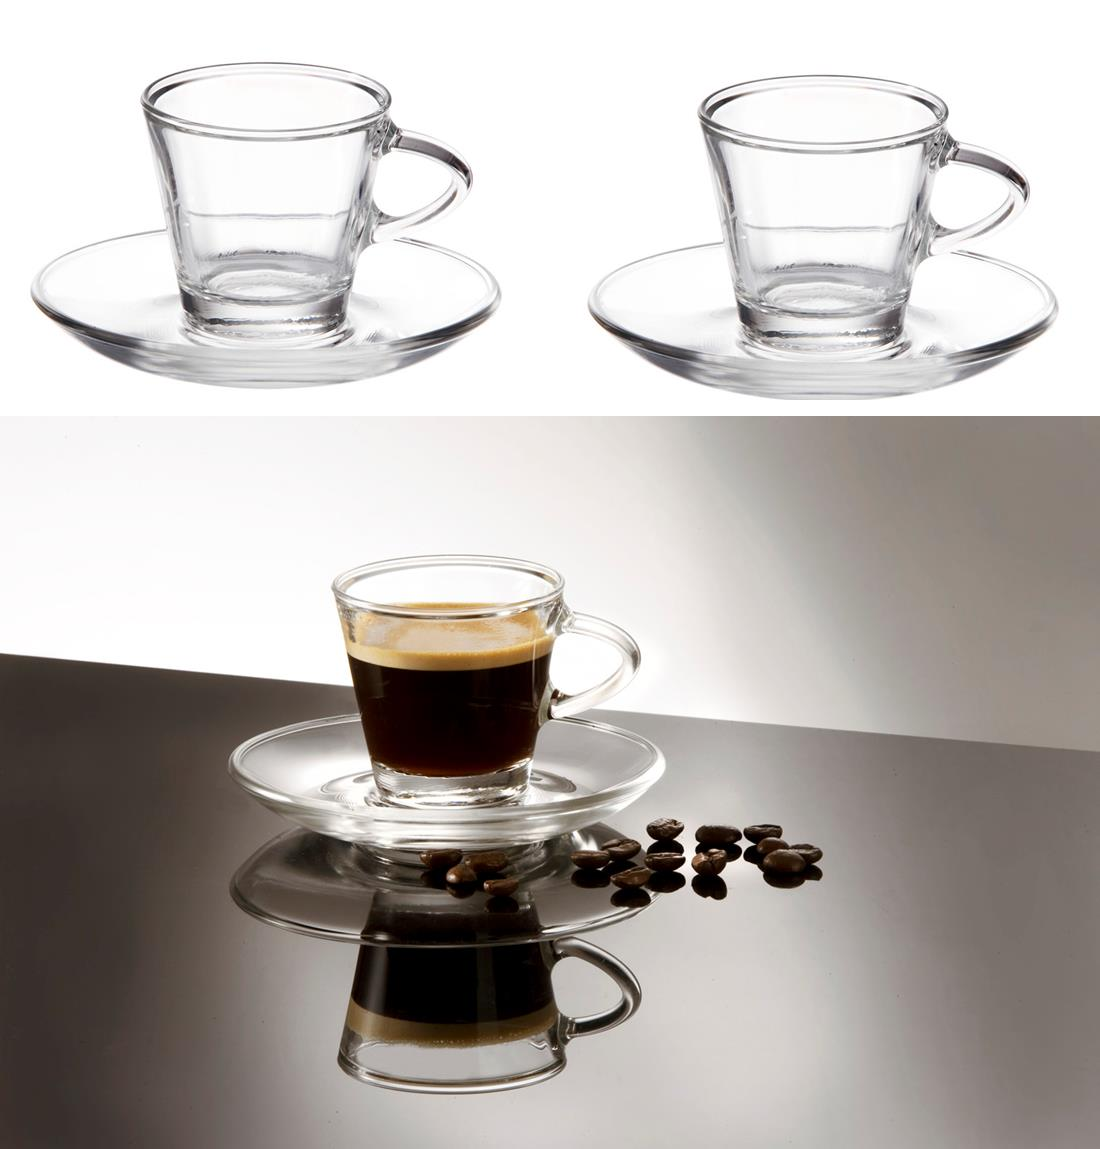 Small Coffee Cups And Saucers Details About 2 Clear Small Glass Espresso Coffee Cups Saucers 80ml Set Of 2 Gift Boxed Uk